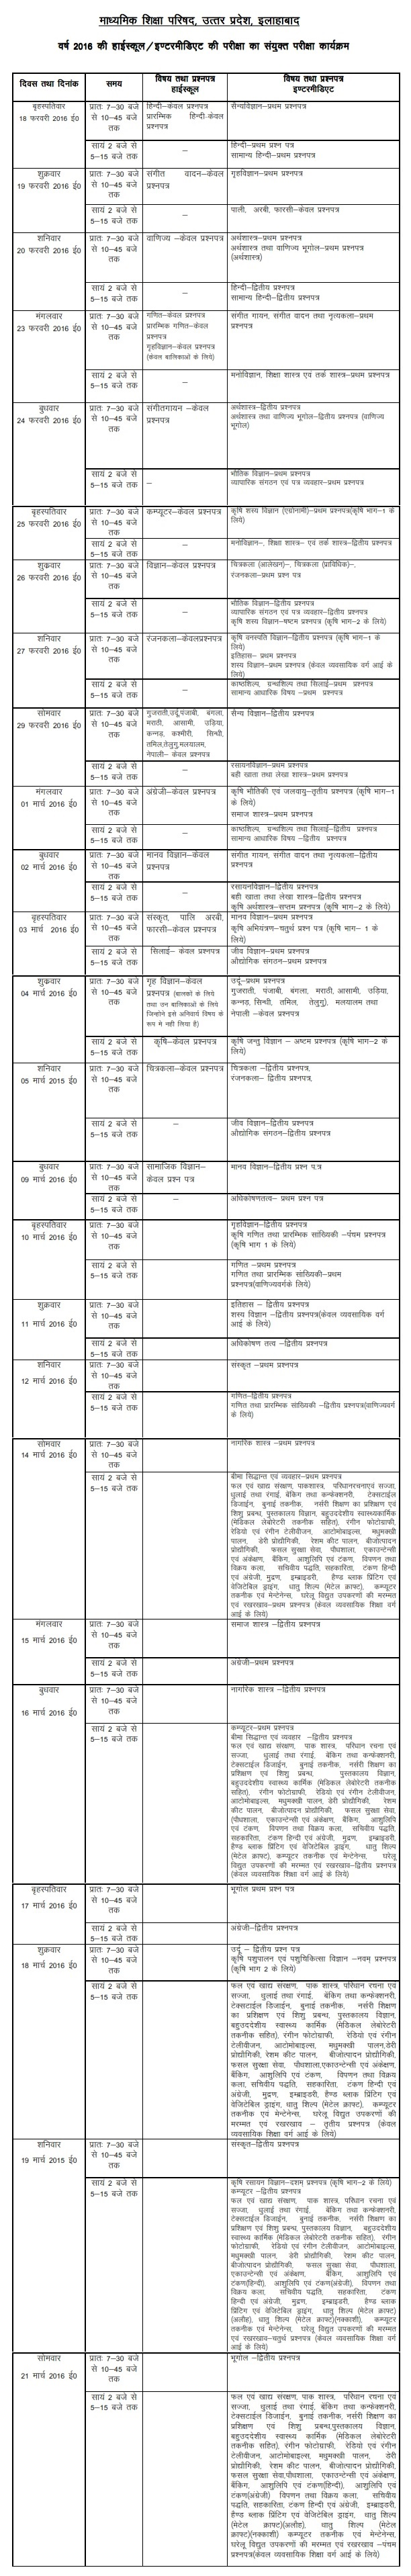 Up board class 10th and 12th time table 2017 for Up board 10th time table